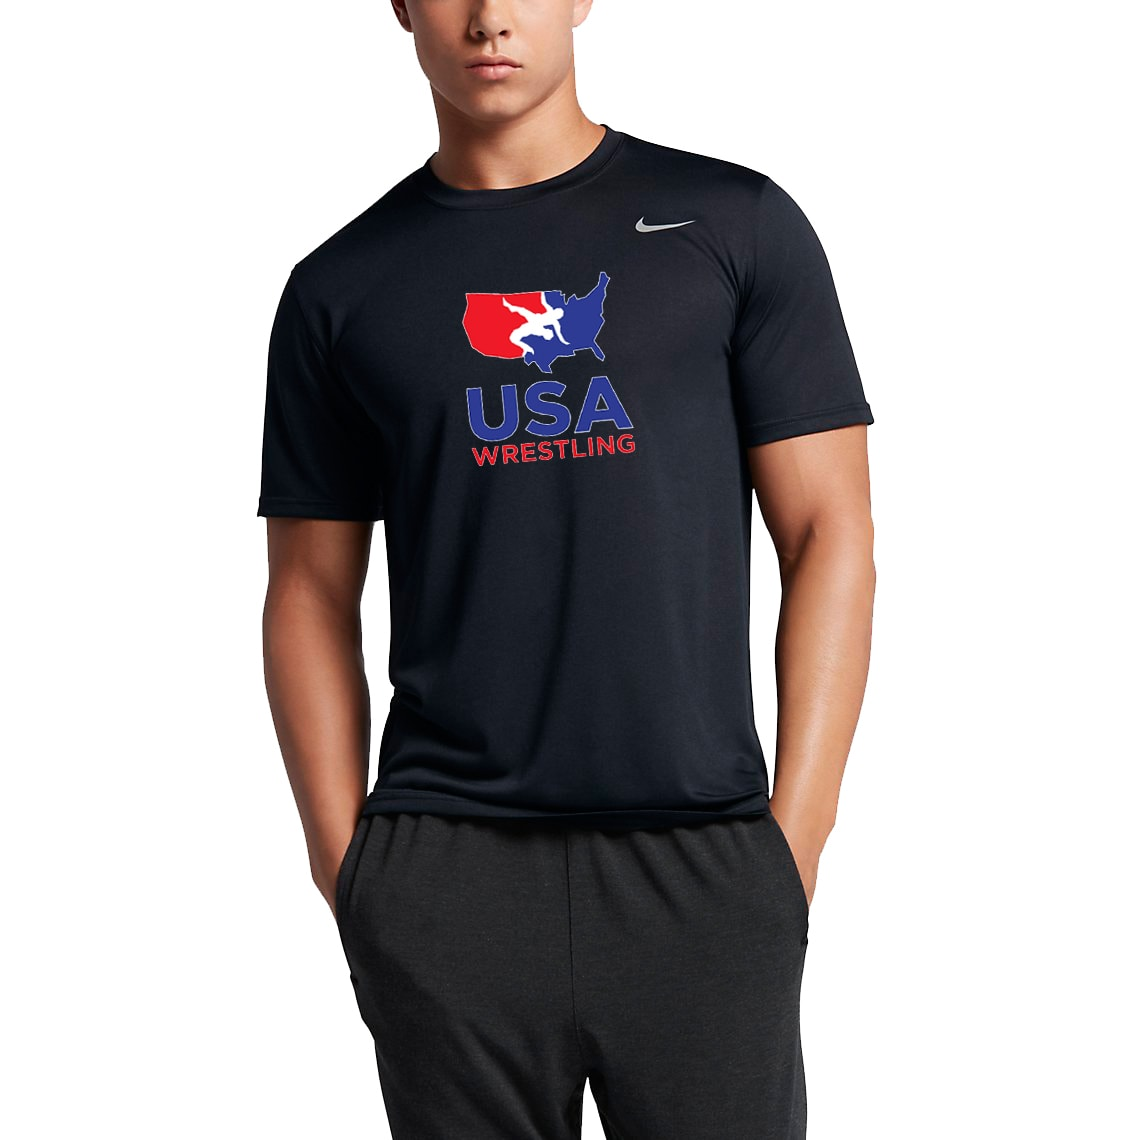 Nike USA Wrestling Legend Tee (Black)